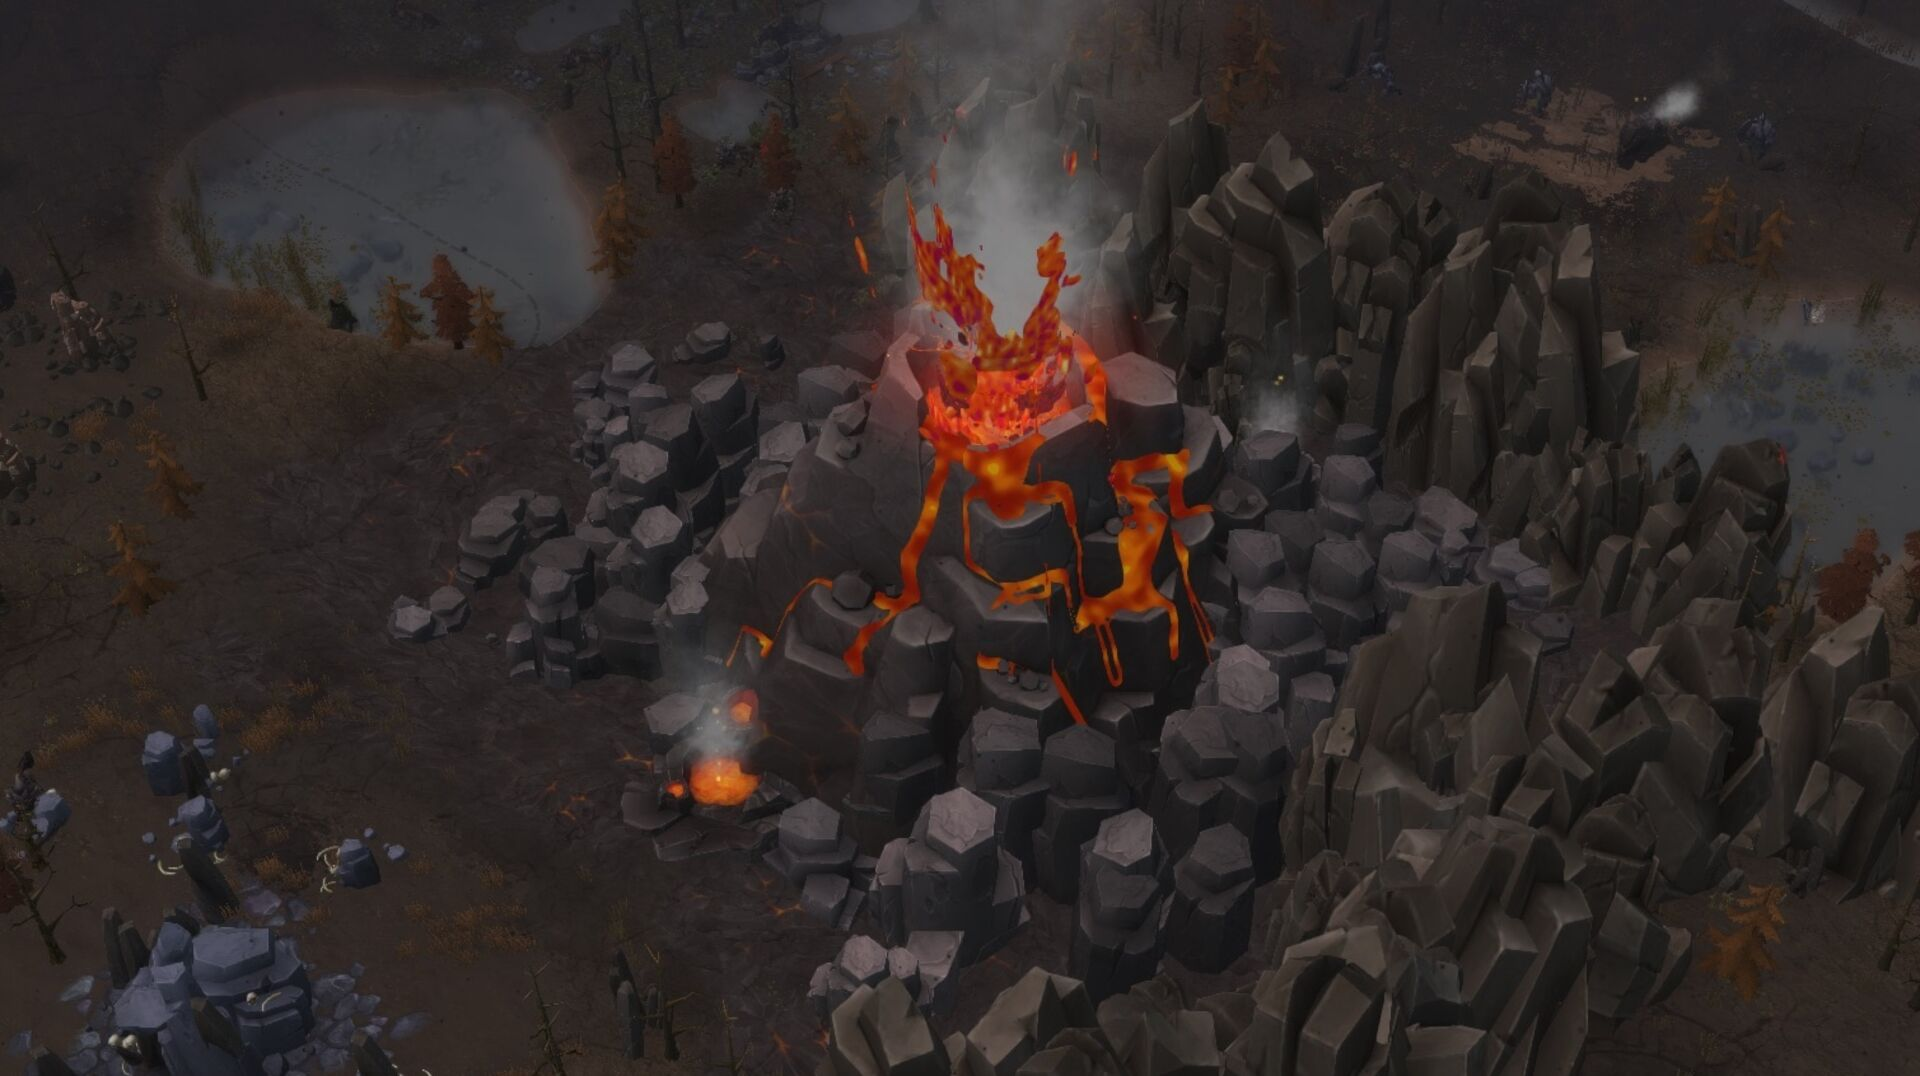 Viking-themed RTS Northgard just got a major free end-of-the